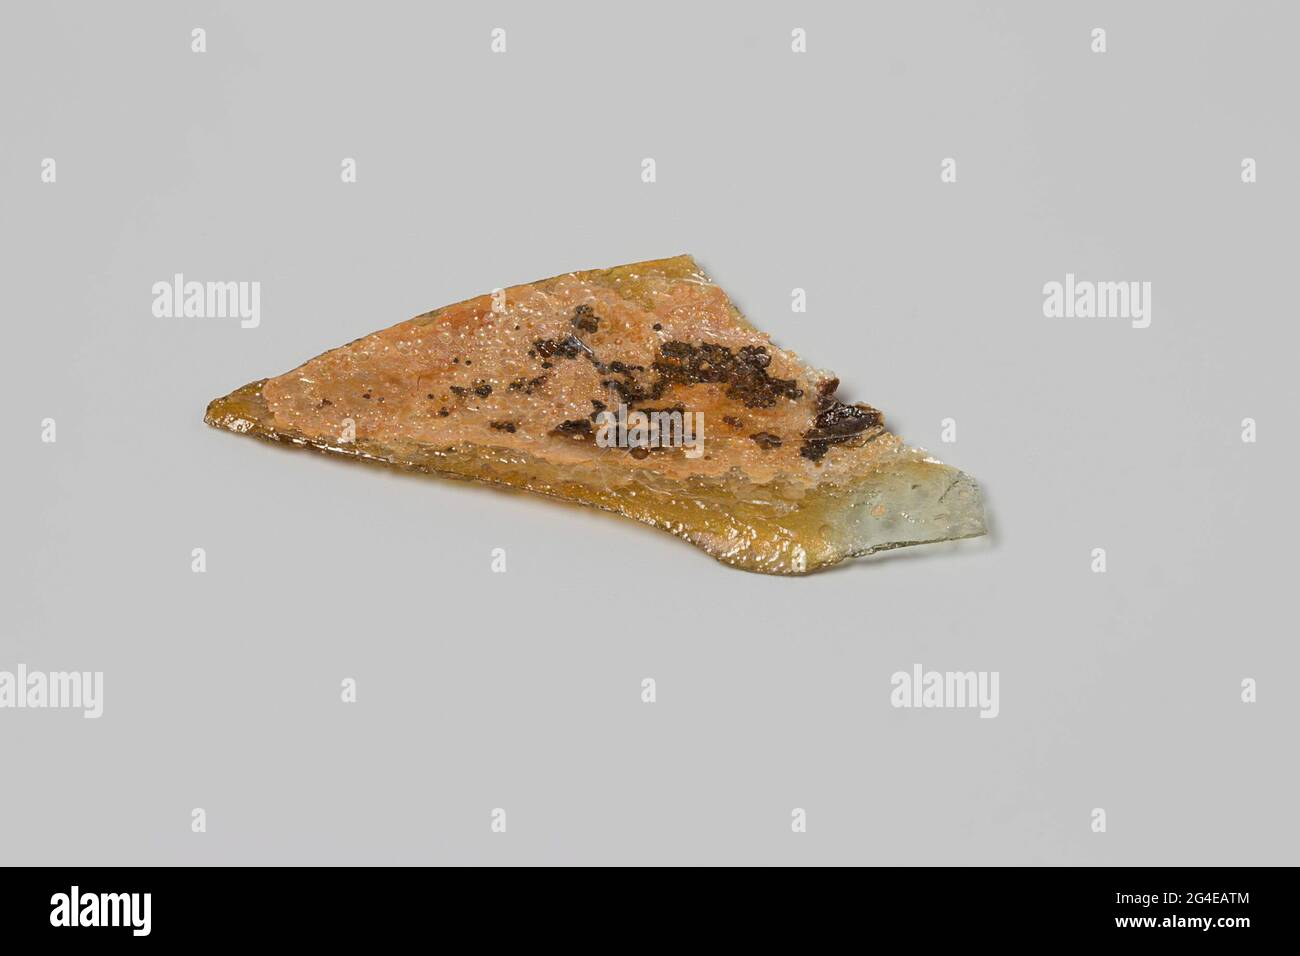 Fragment of a wine bottle from the wreck of the East India Flying Heart. Dispiled glass shard. Stock Photo